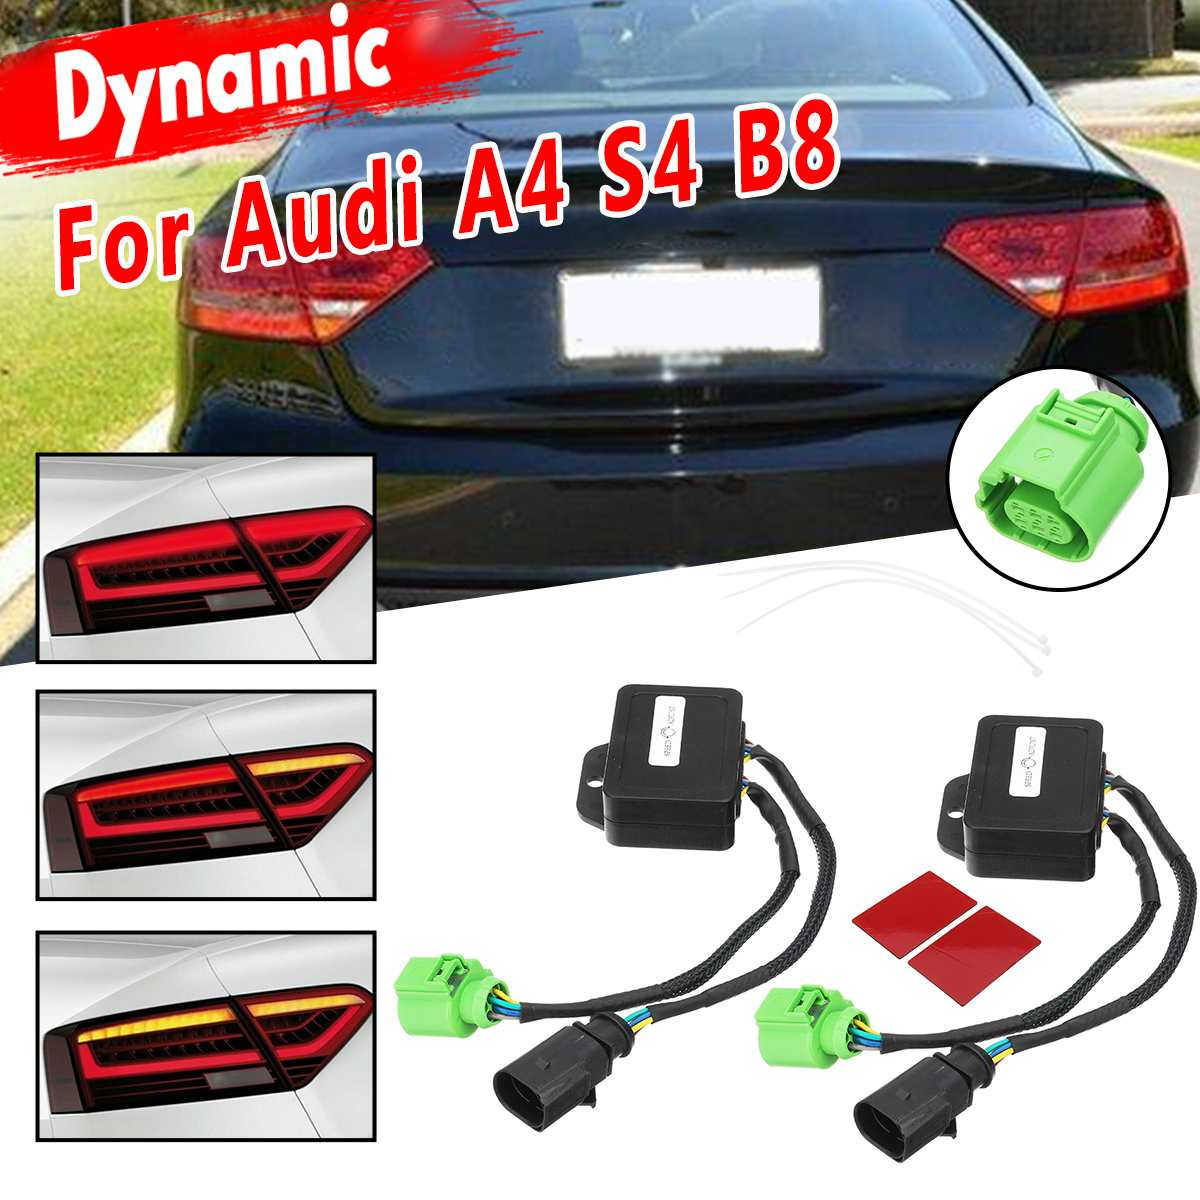 1 Pair Limo Semi Dynamic Taillights Turn Signal Indicator LED Taillights Module For Audi A4 S4 B8 2012-2018 Sedan